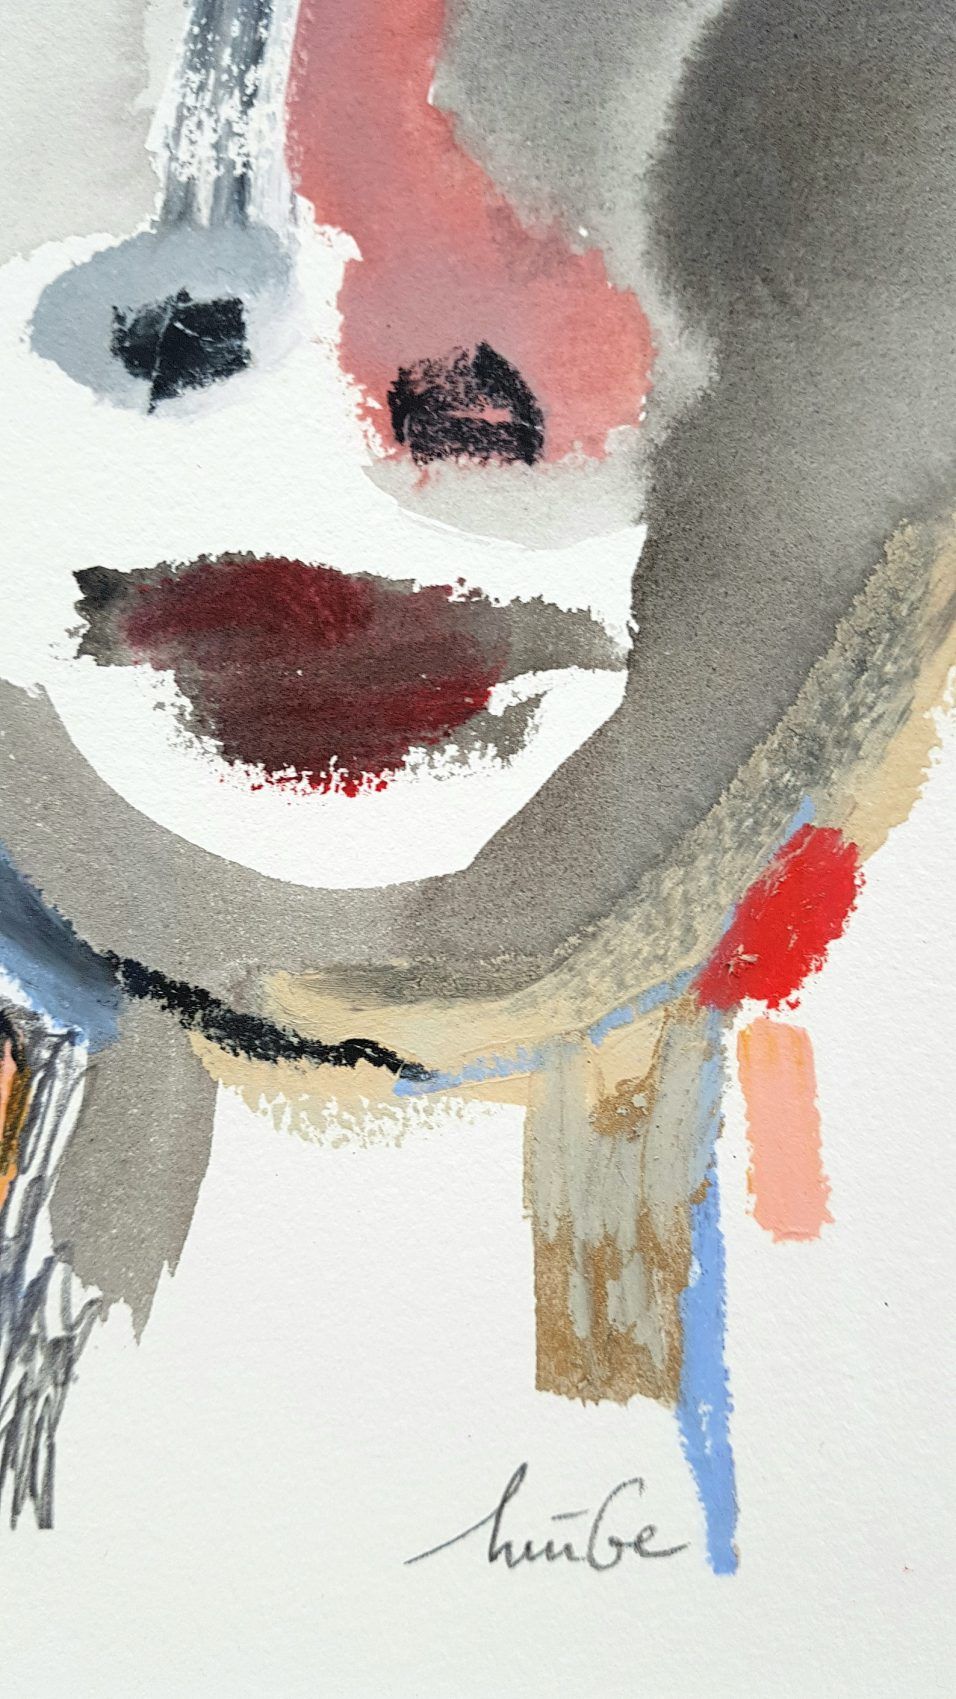 Noor Huige Boy mixed media tekening detail